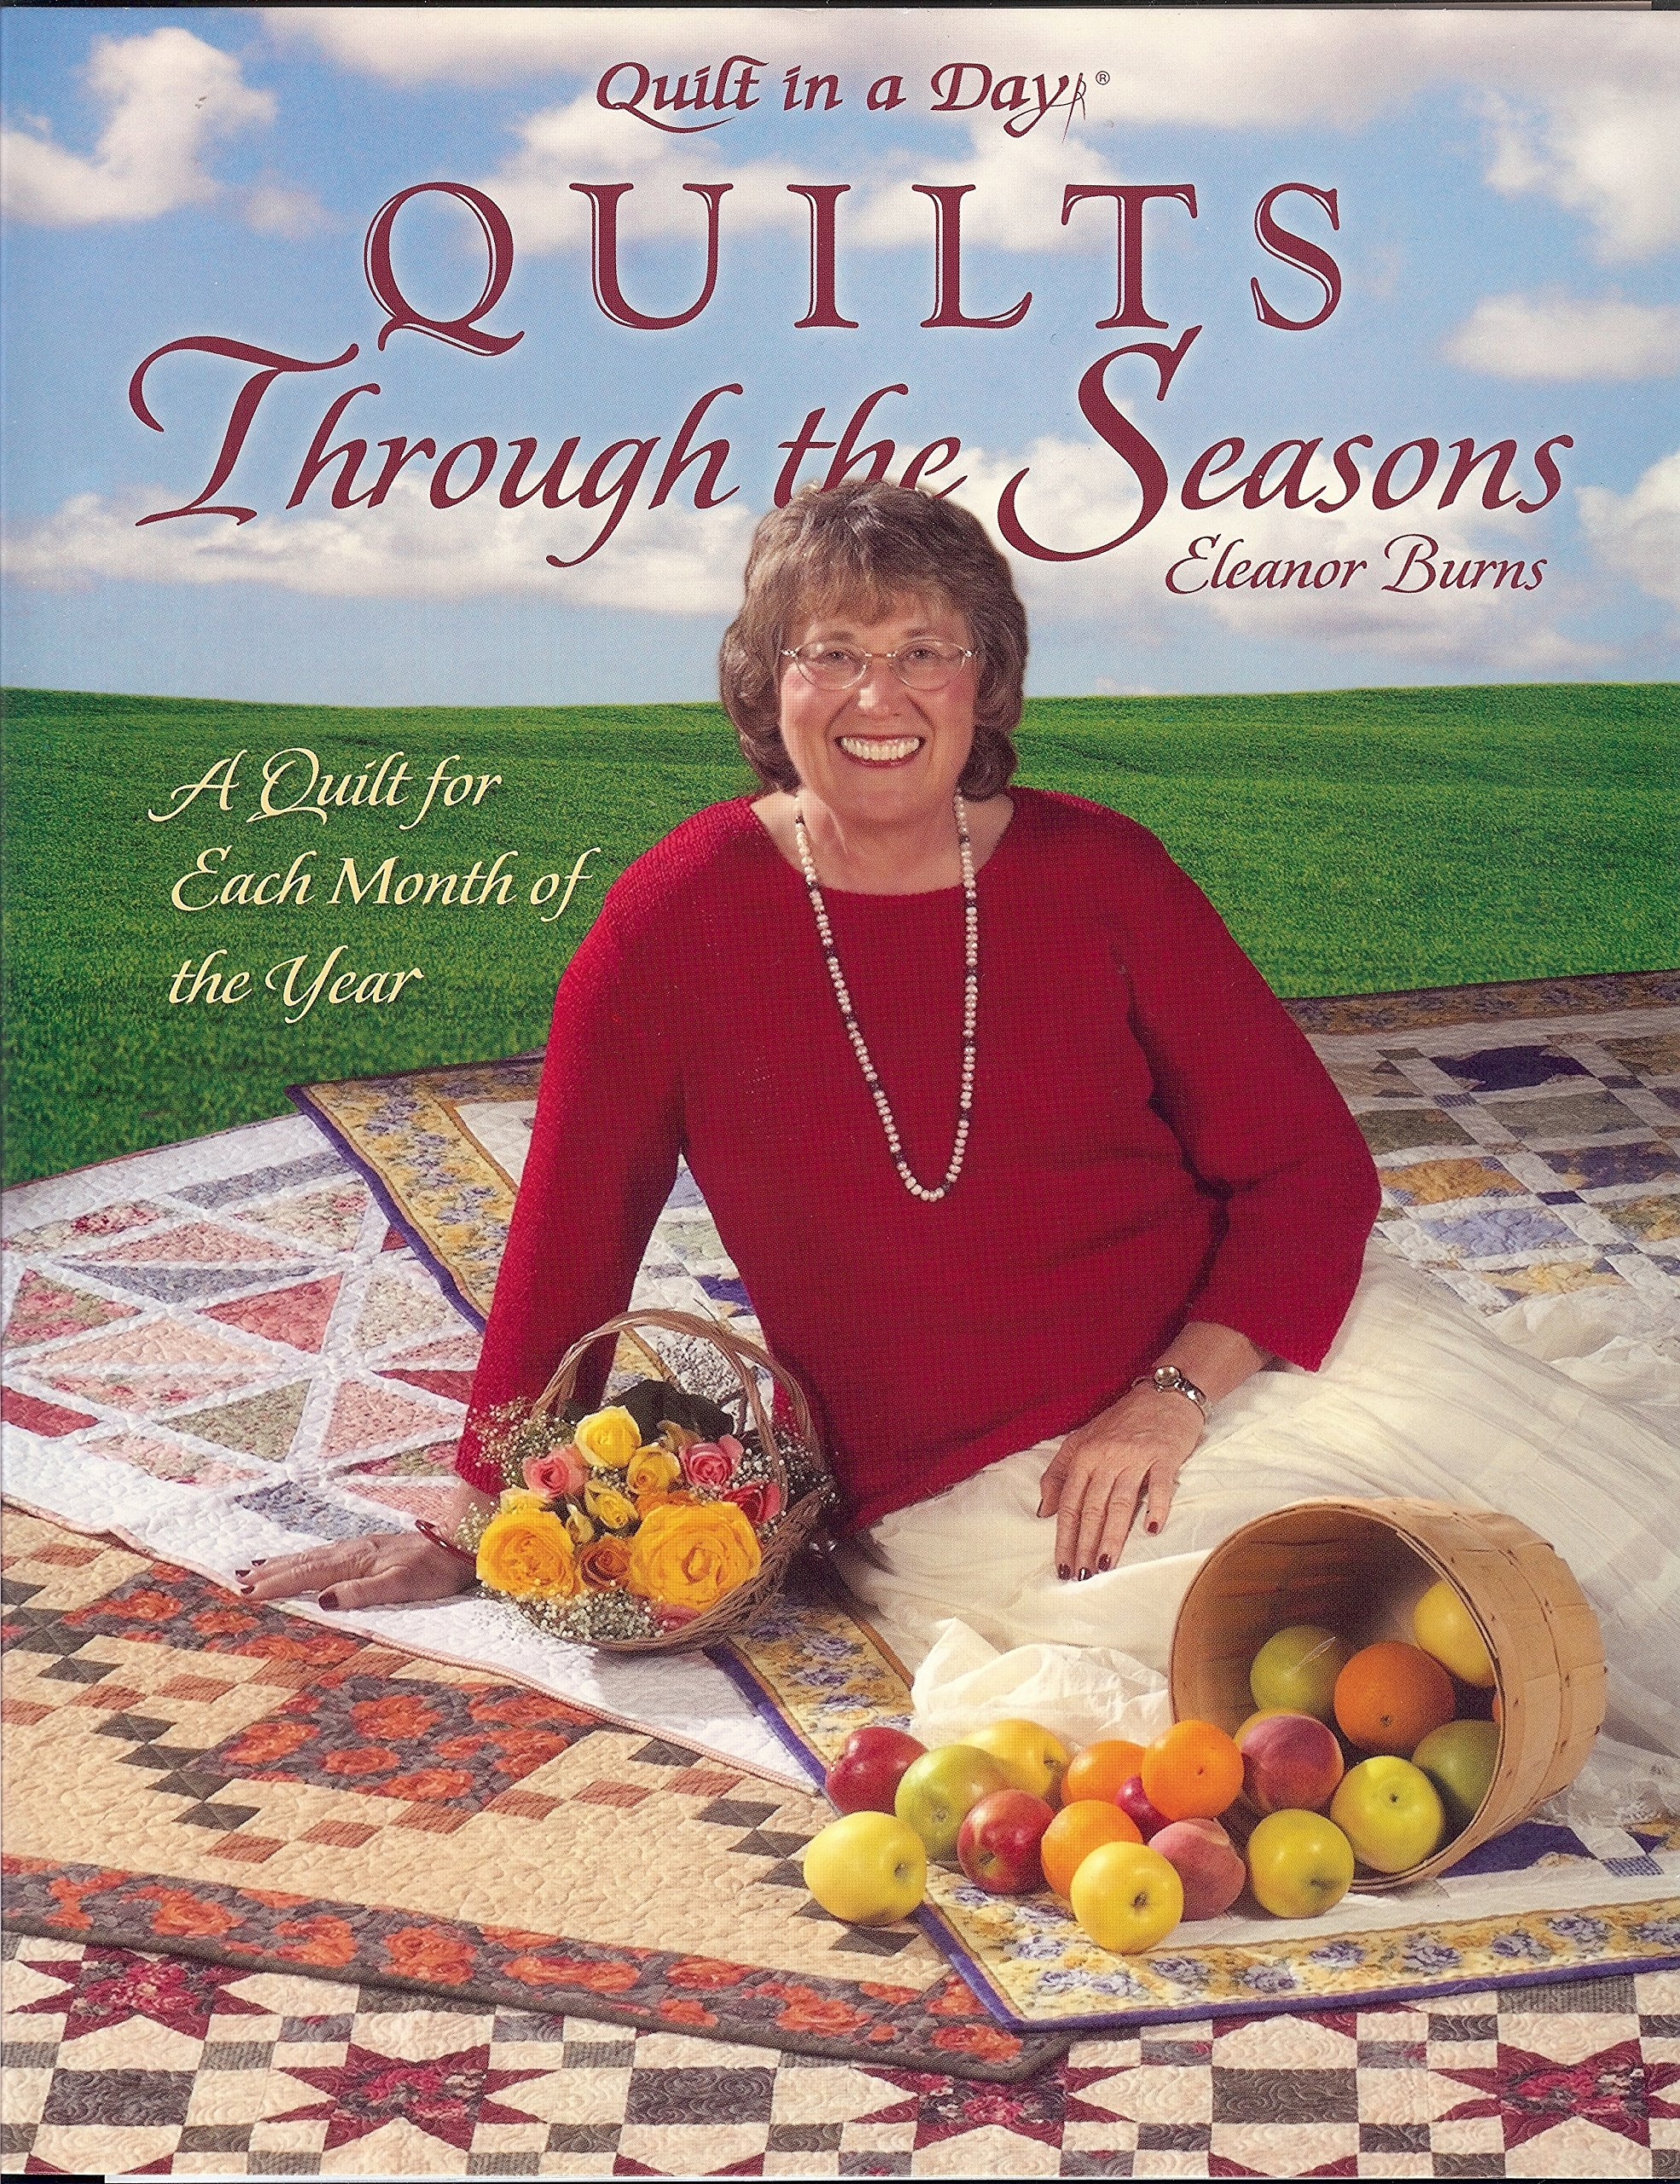 Quilts Through the Seasons: A Quilt for Each Month of the Year (Quilt in a Day Series)